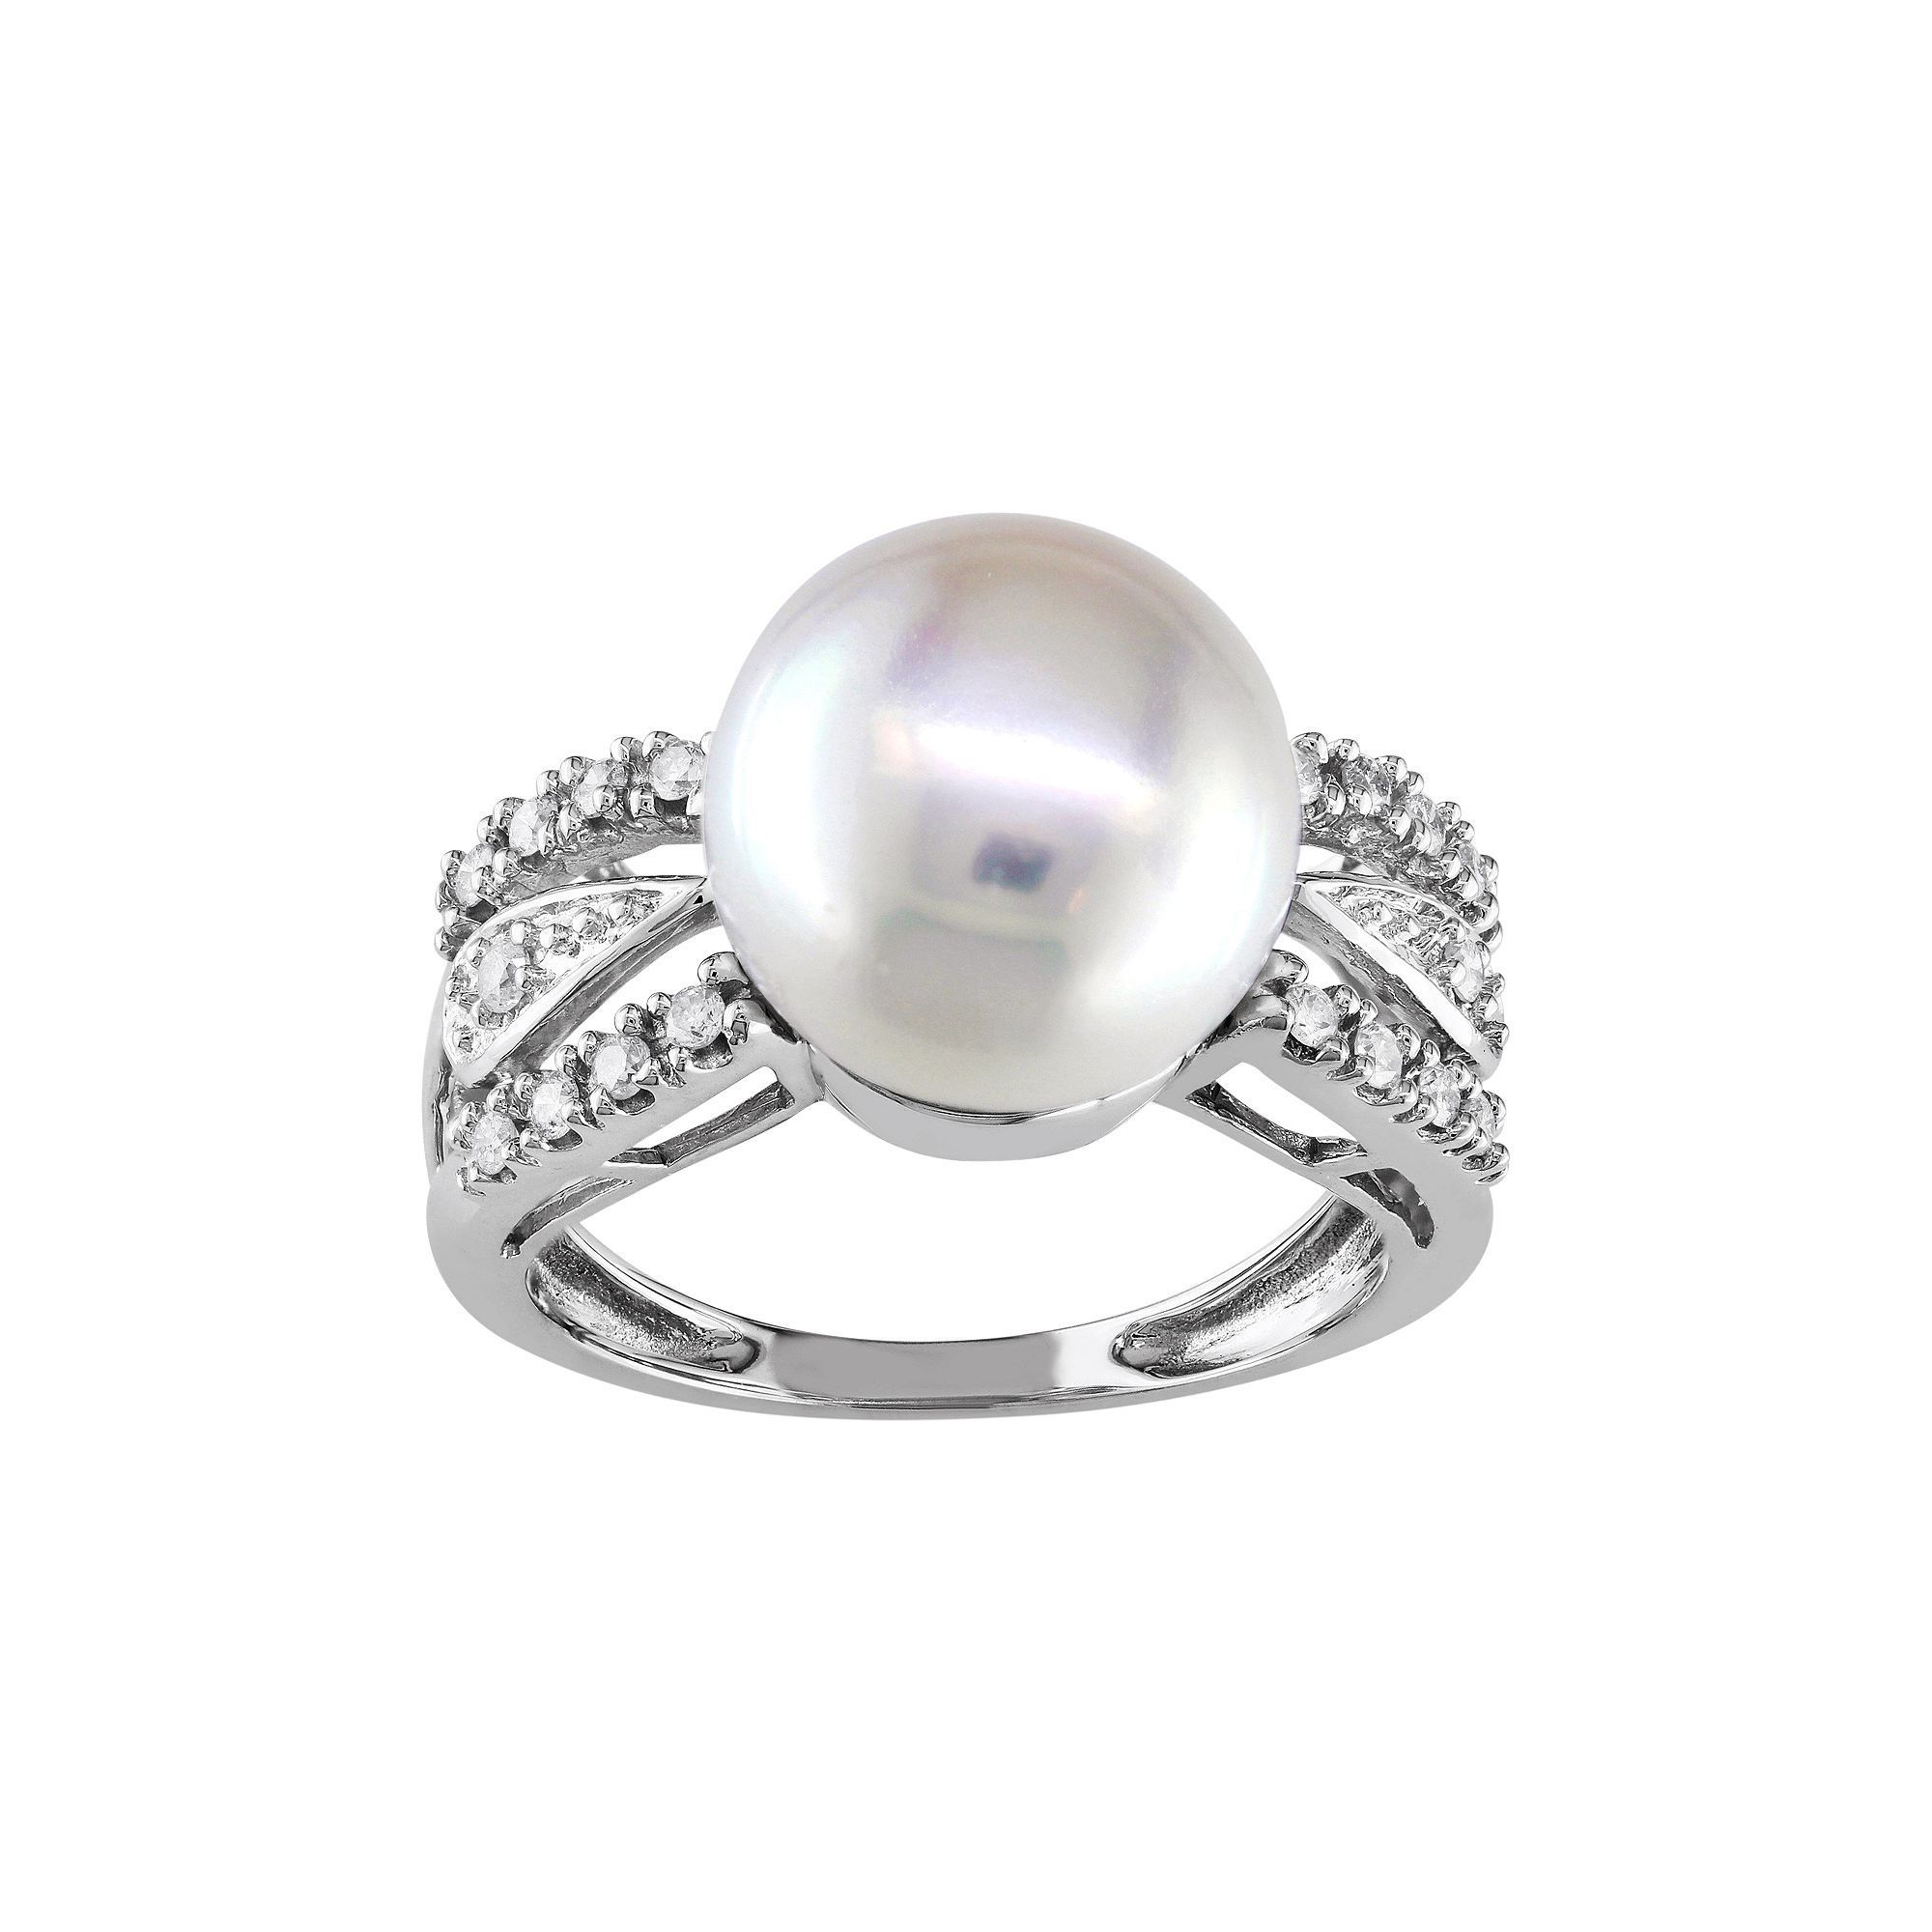 14k White Gold 1/8 Carat T.W. Diamond & Freshwater Cultured Pearl Ring, Women's, Size: 7